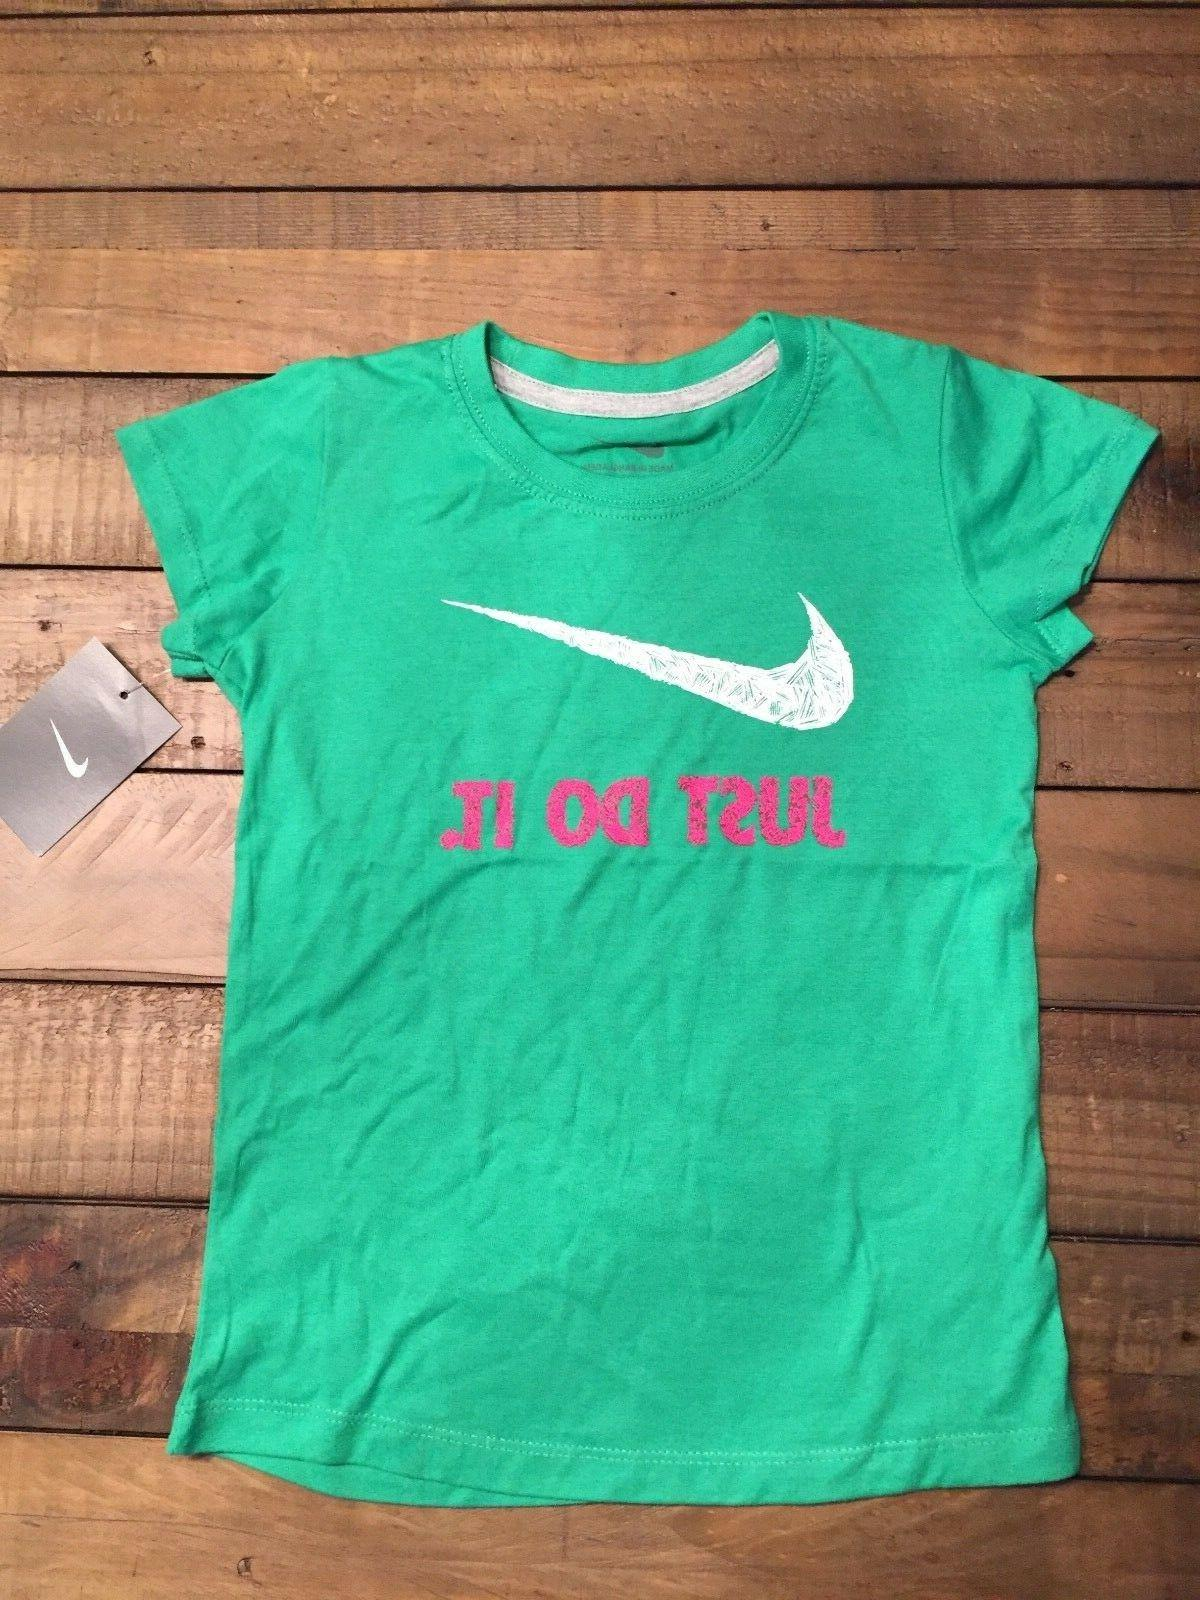 girls tee nwt size 6x great color